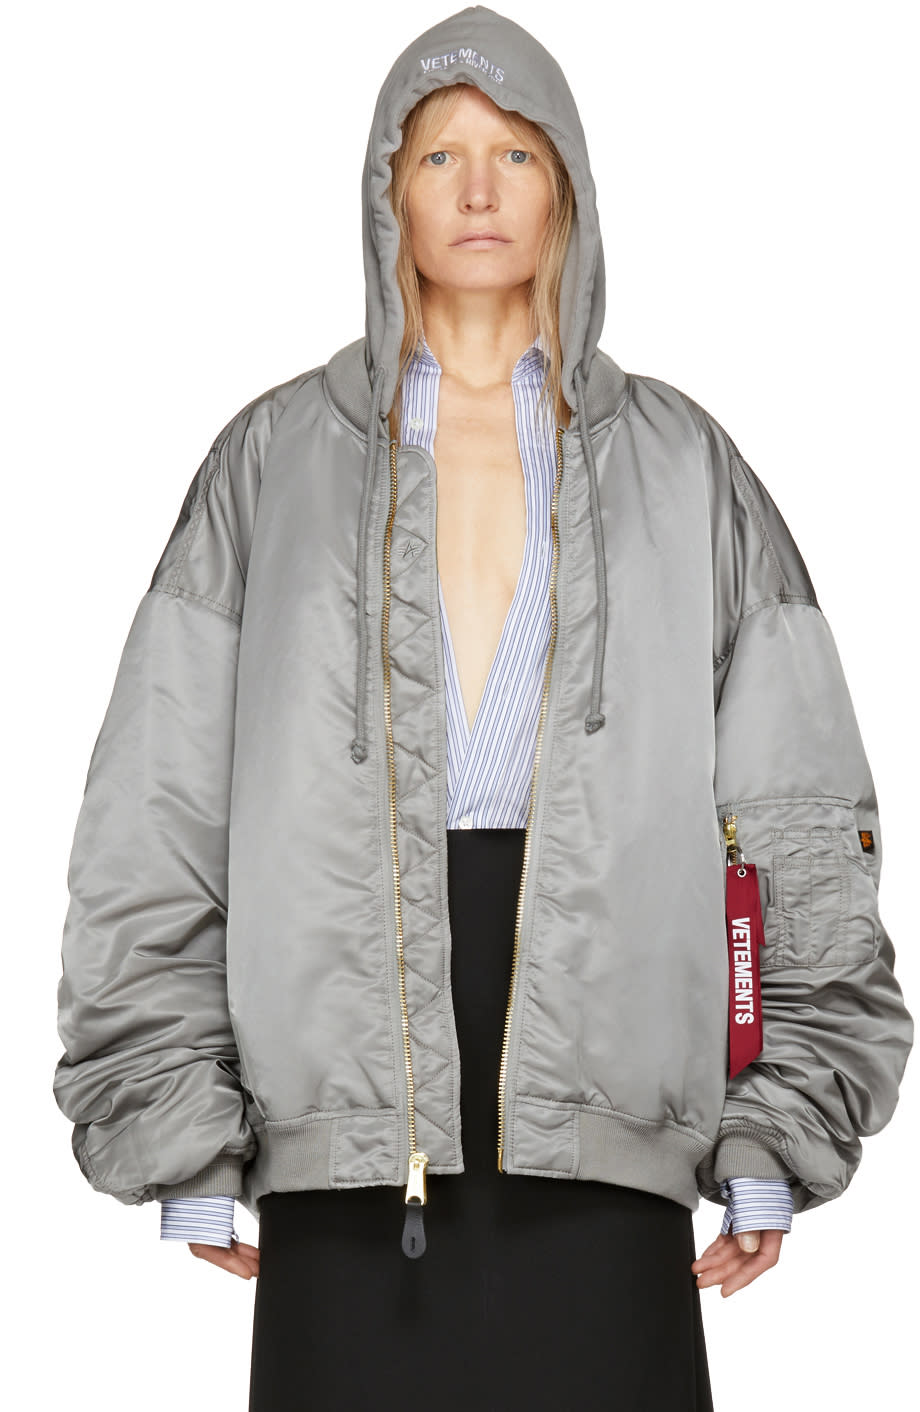 Vetements Reversible Grey Alpha Industries Edition Hooded Bomber